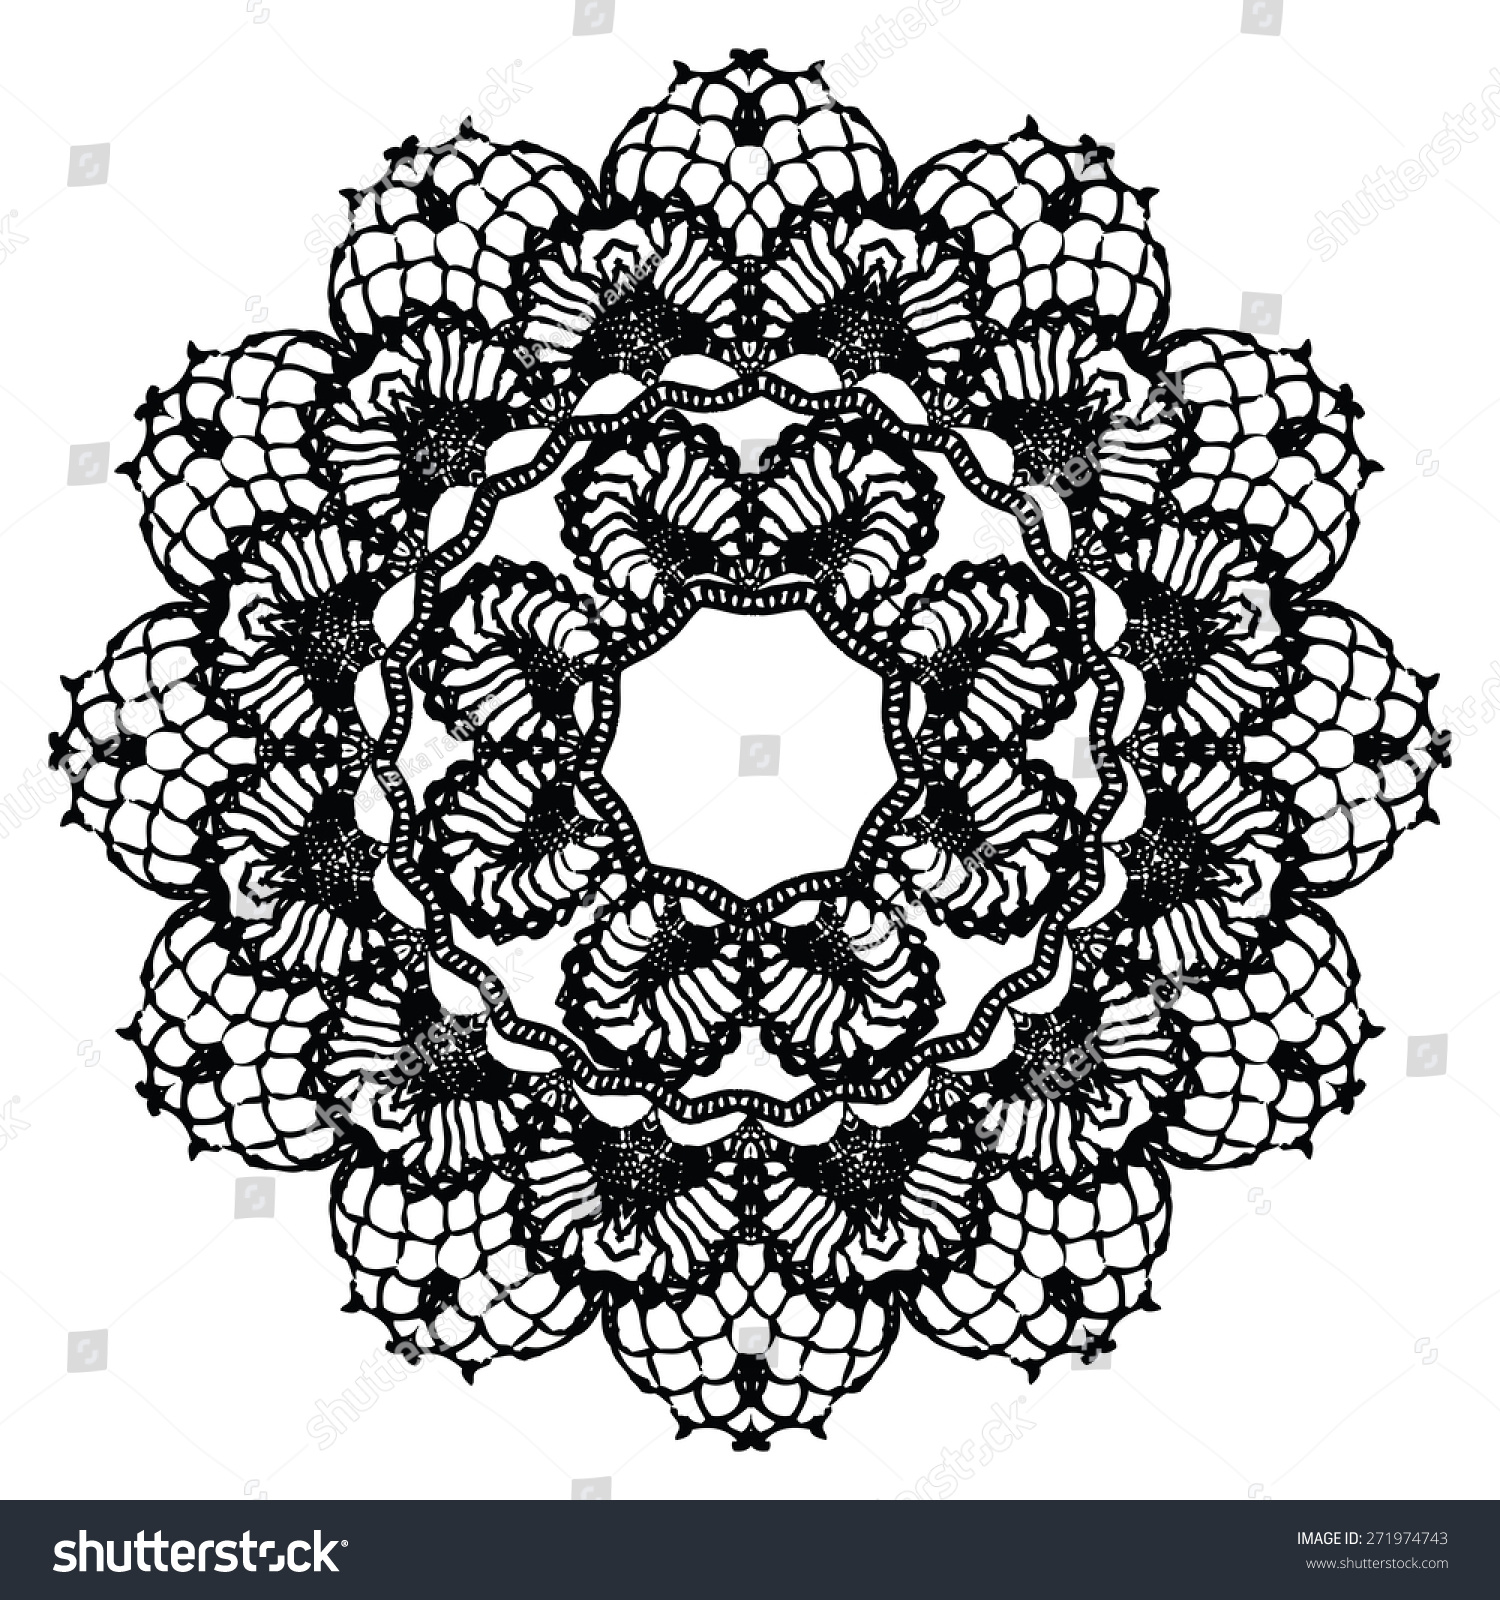 Crochet Stitches Vector : stock-vector-black-crochet-doily-vector-illustration-may-be-used-for ...